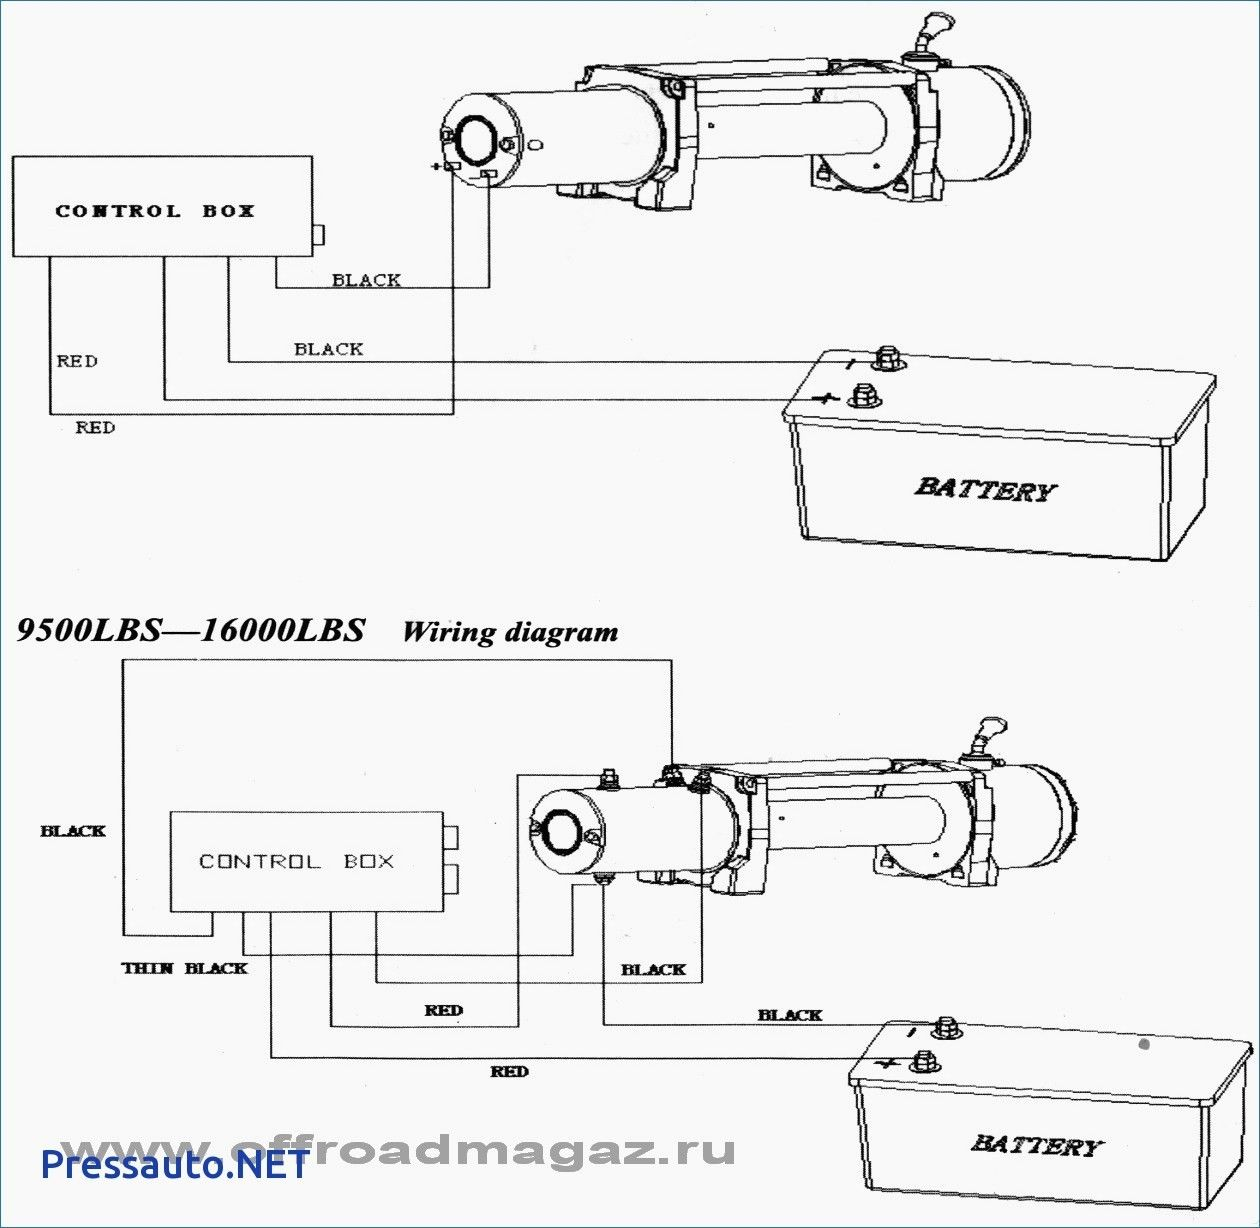 Warn A2000 Winch Wiring Diagram Best Of In 2020 Atv Winch Winch Atv